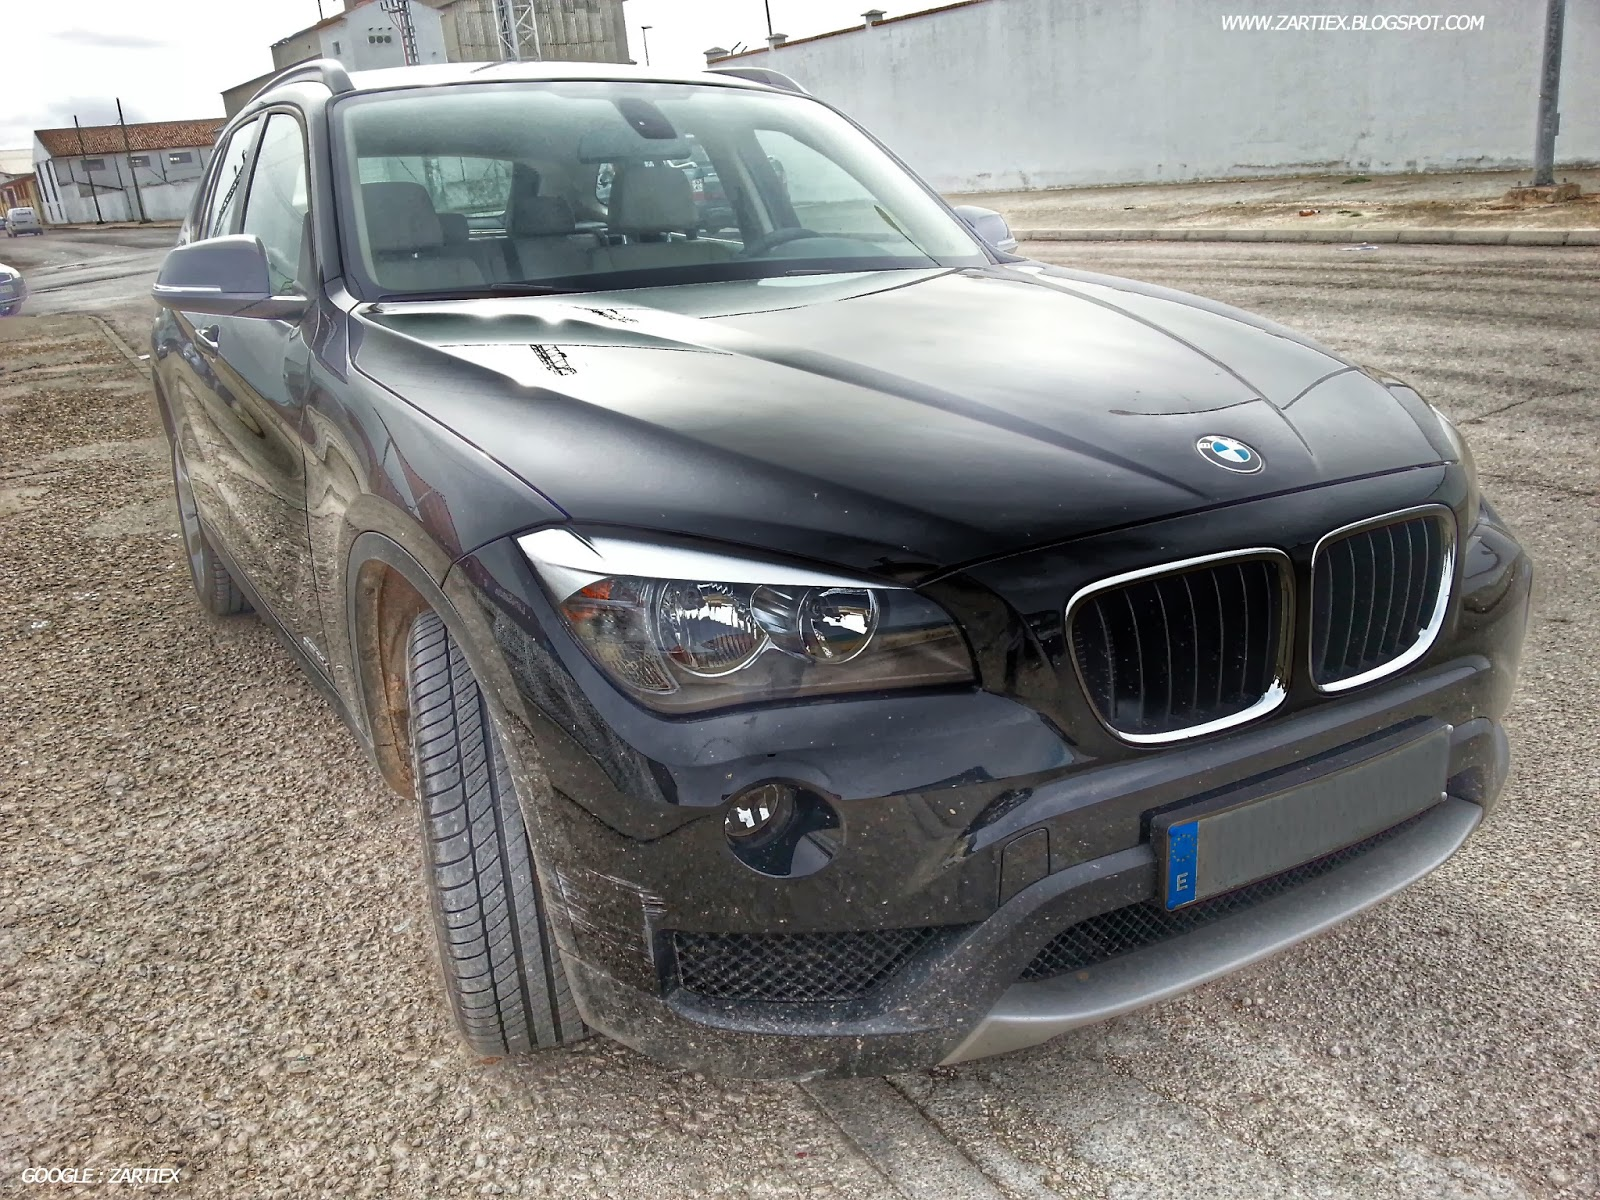 BMW 3 Series - BMW USA - BMW X1